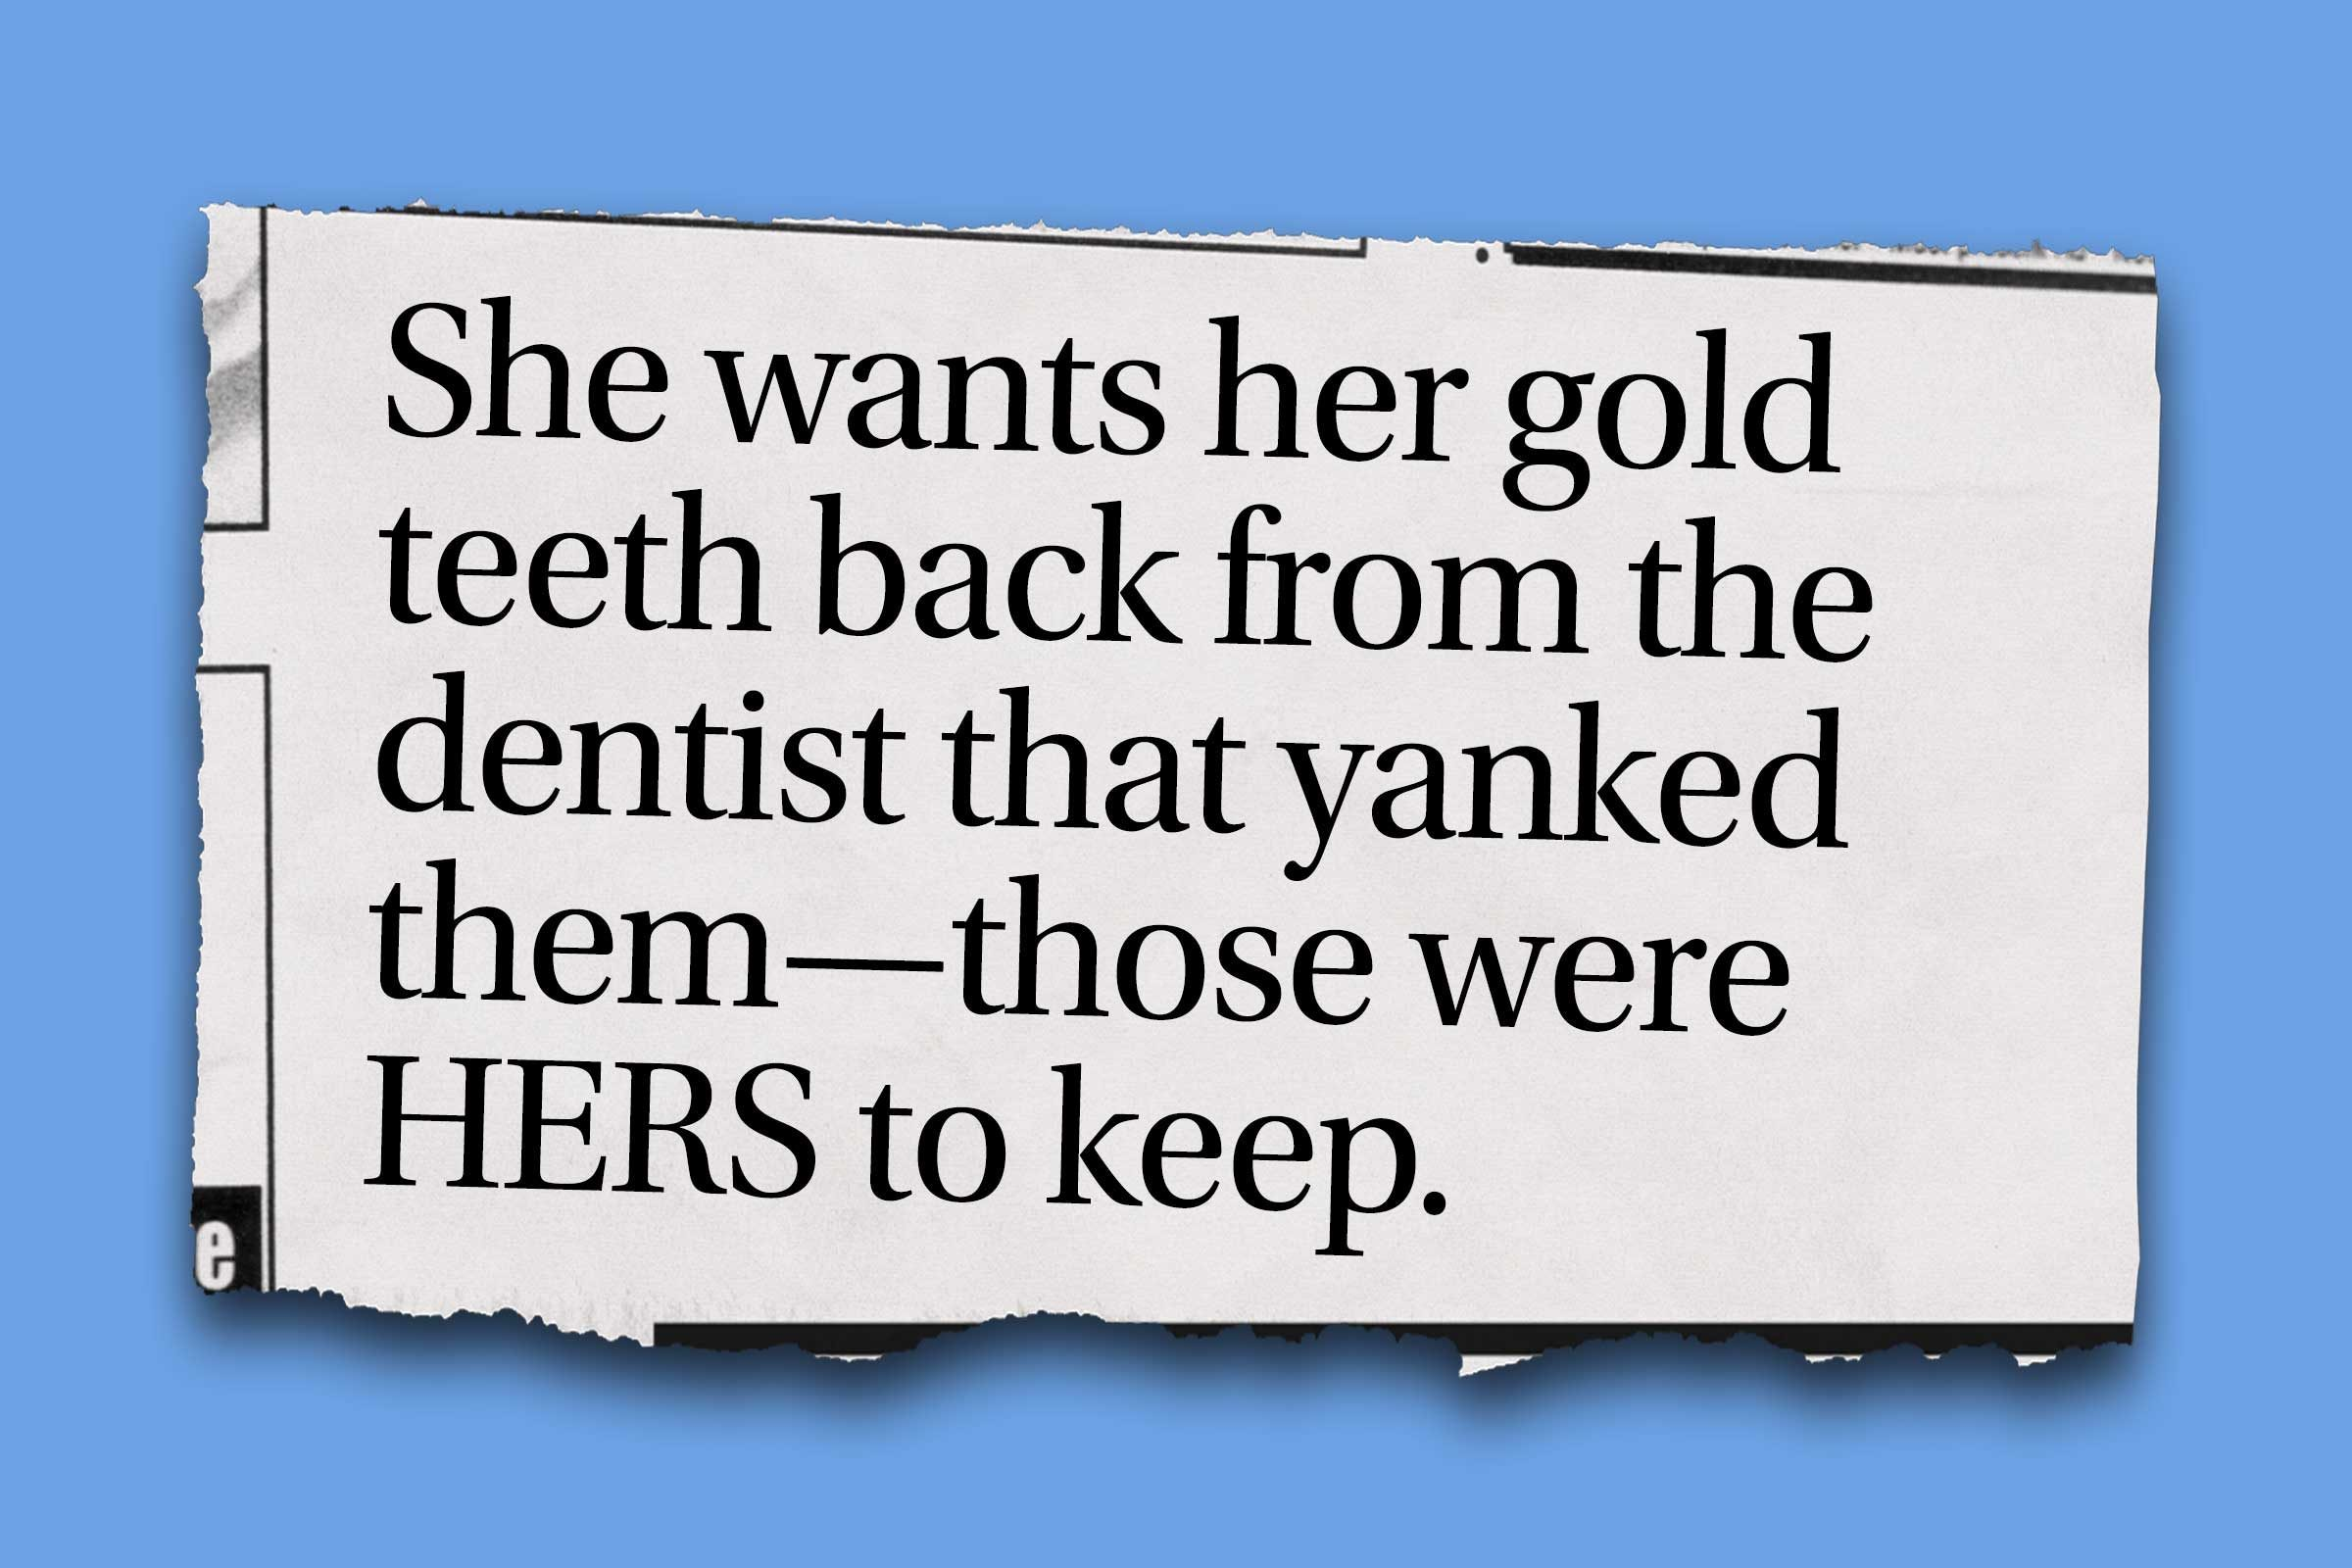 """Funniest obituaries that really exist - """"She wants her gold teeth back from the dentist that yanked them—those were HERS to keep."""""""